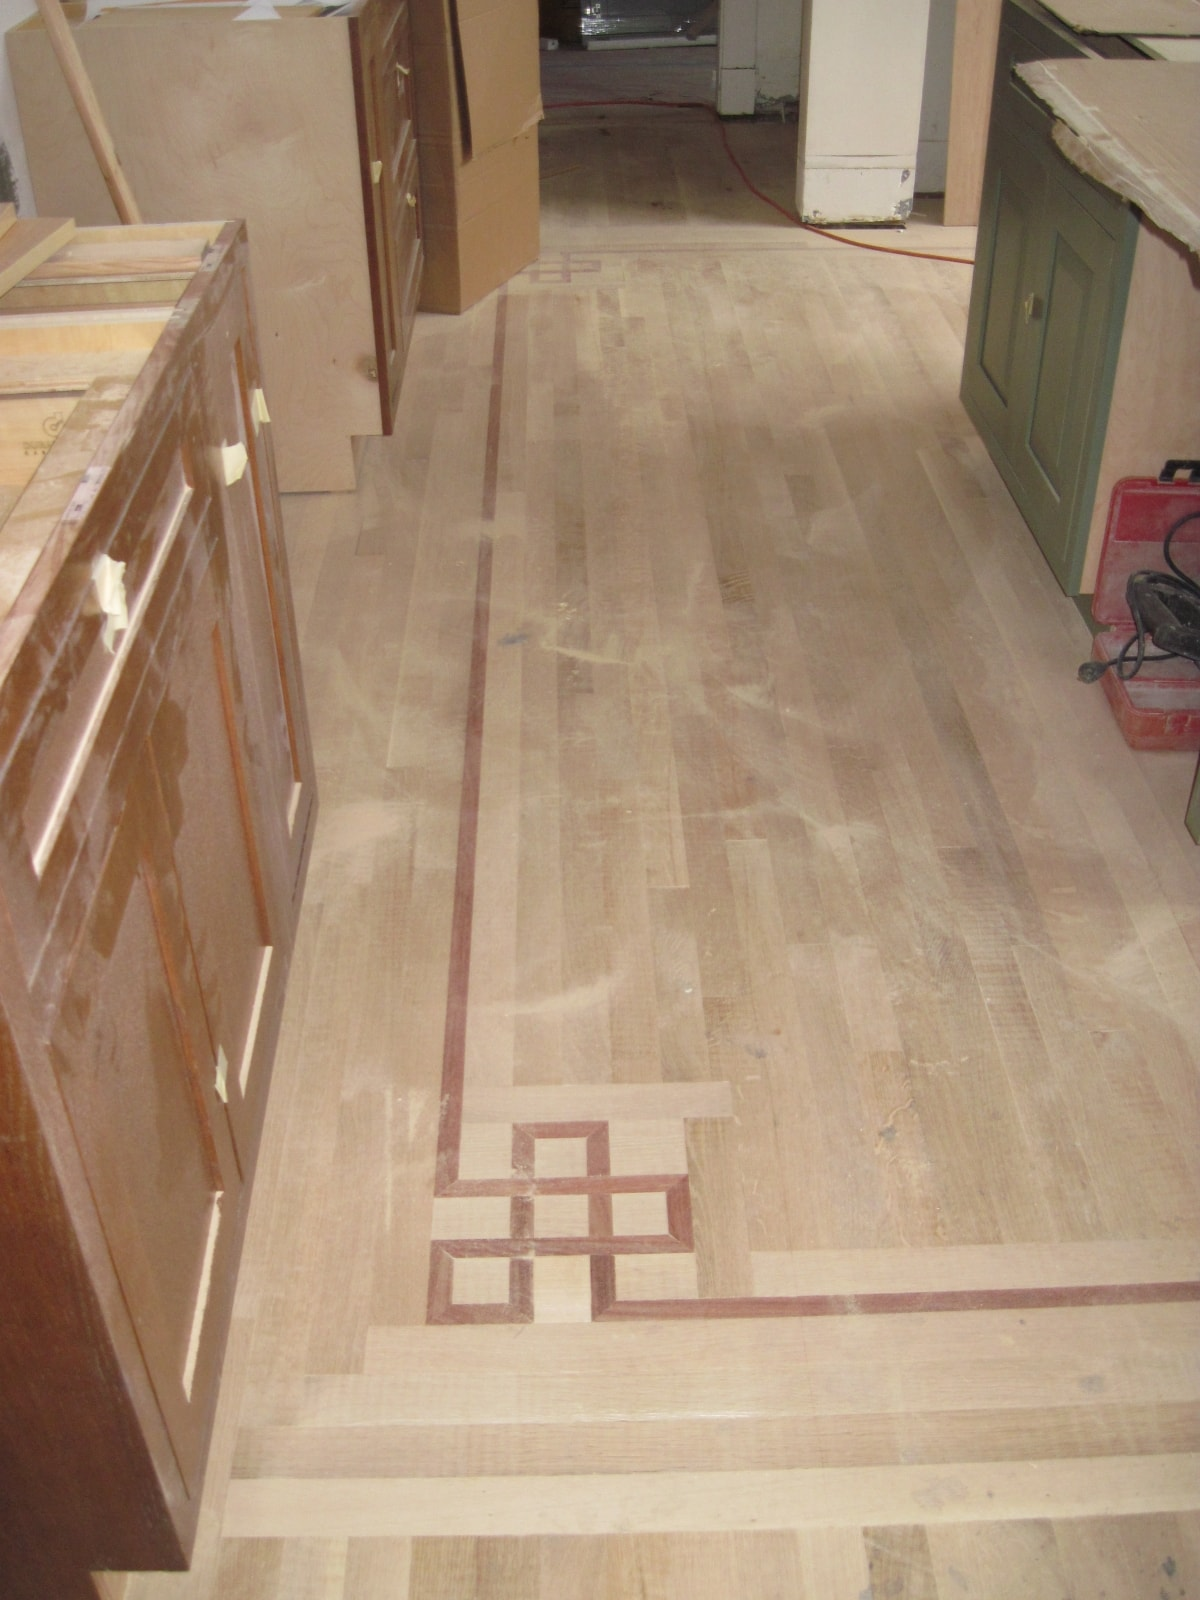 French Knot Design Flooring Medford MA 8-min